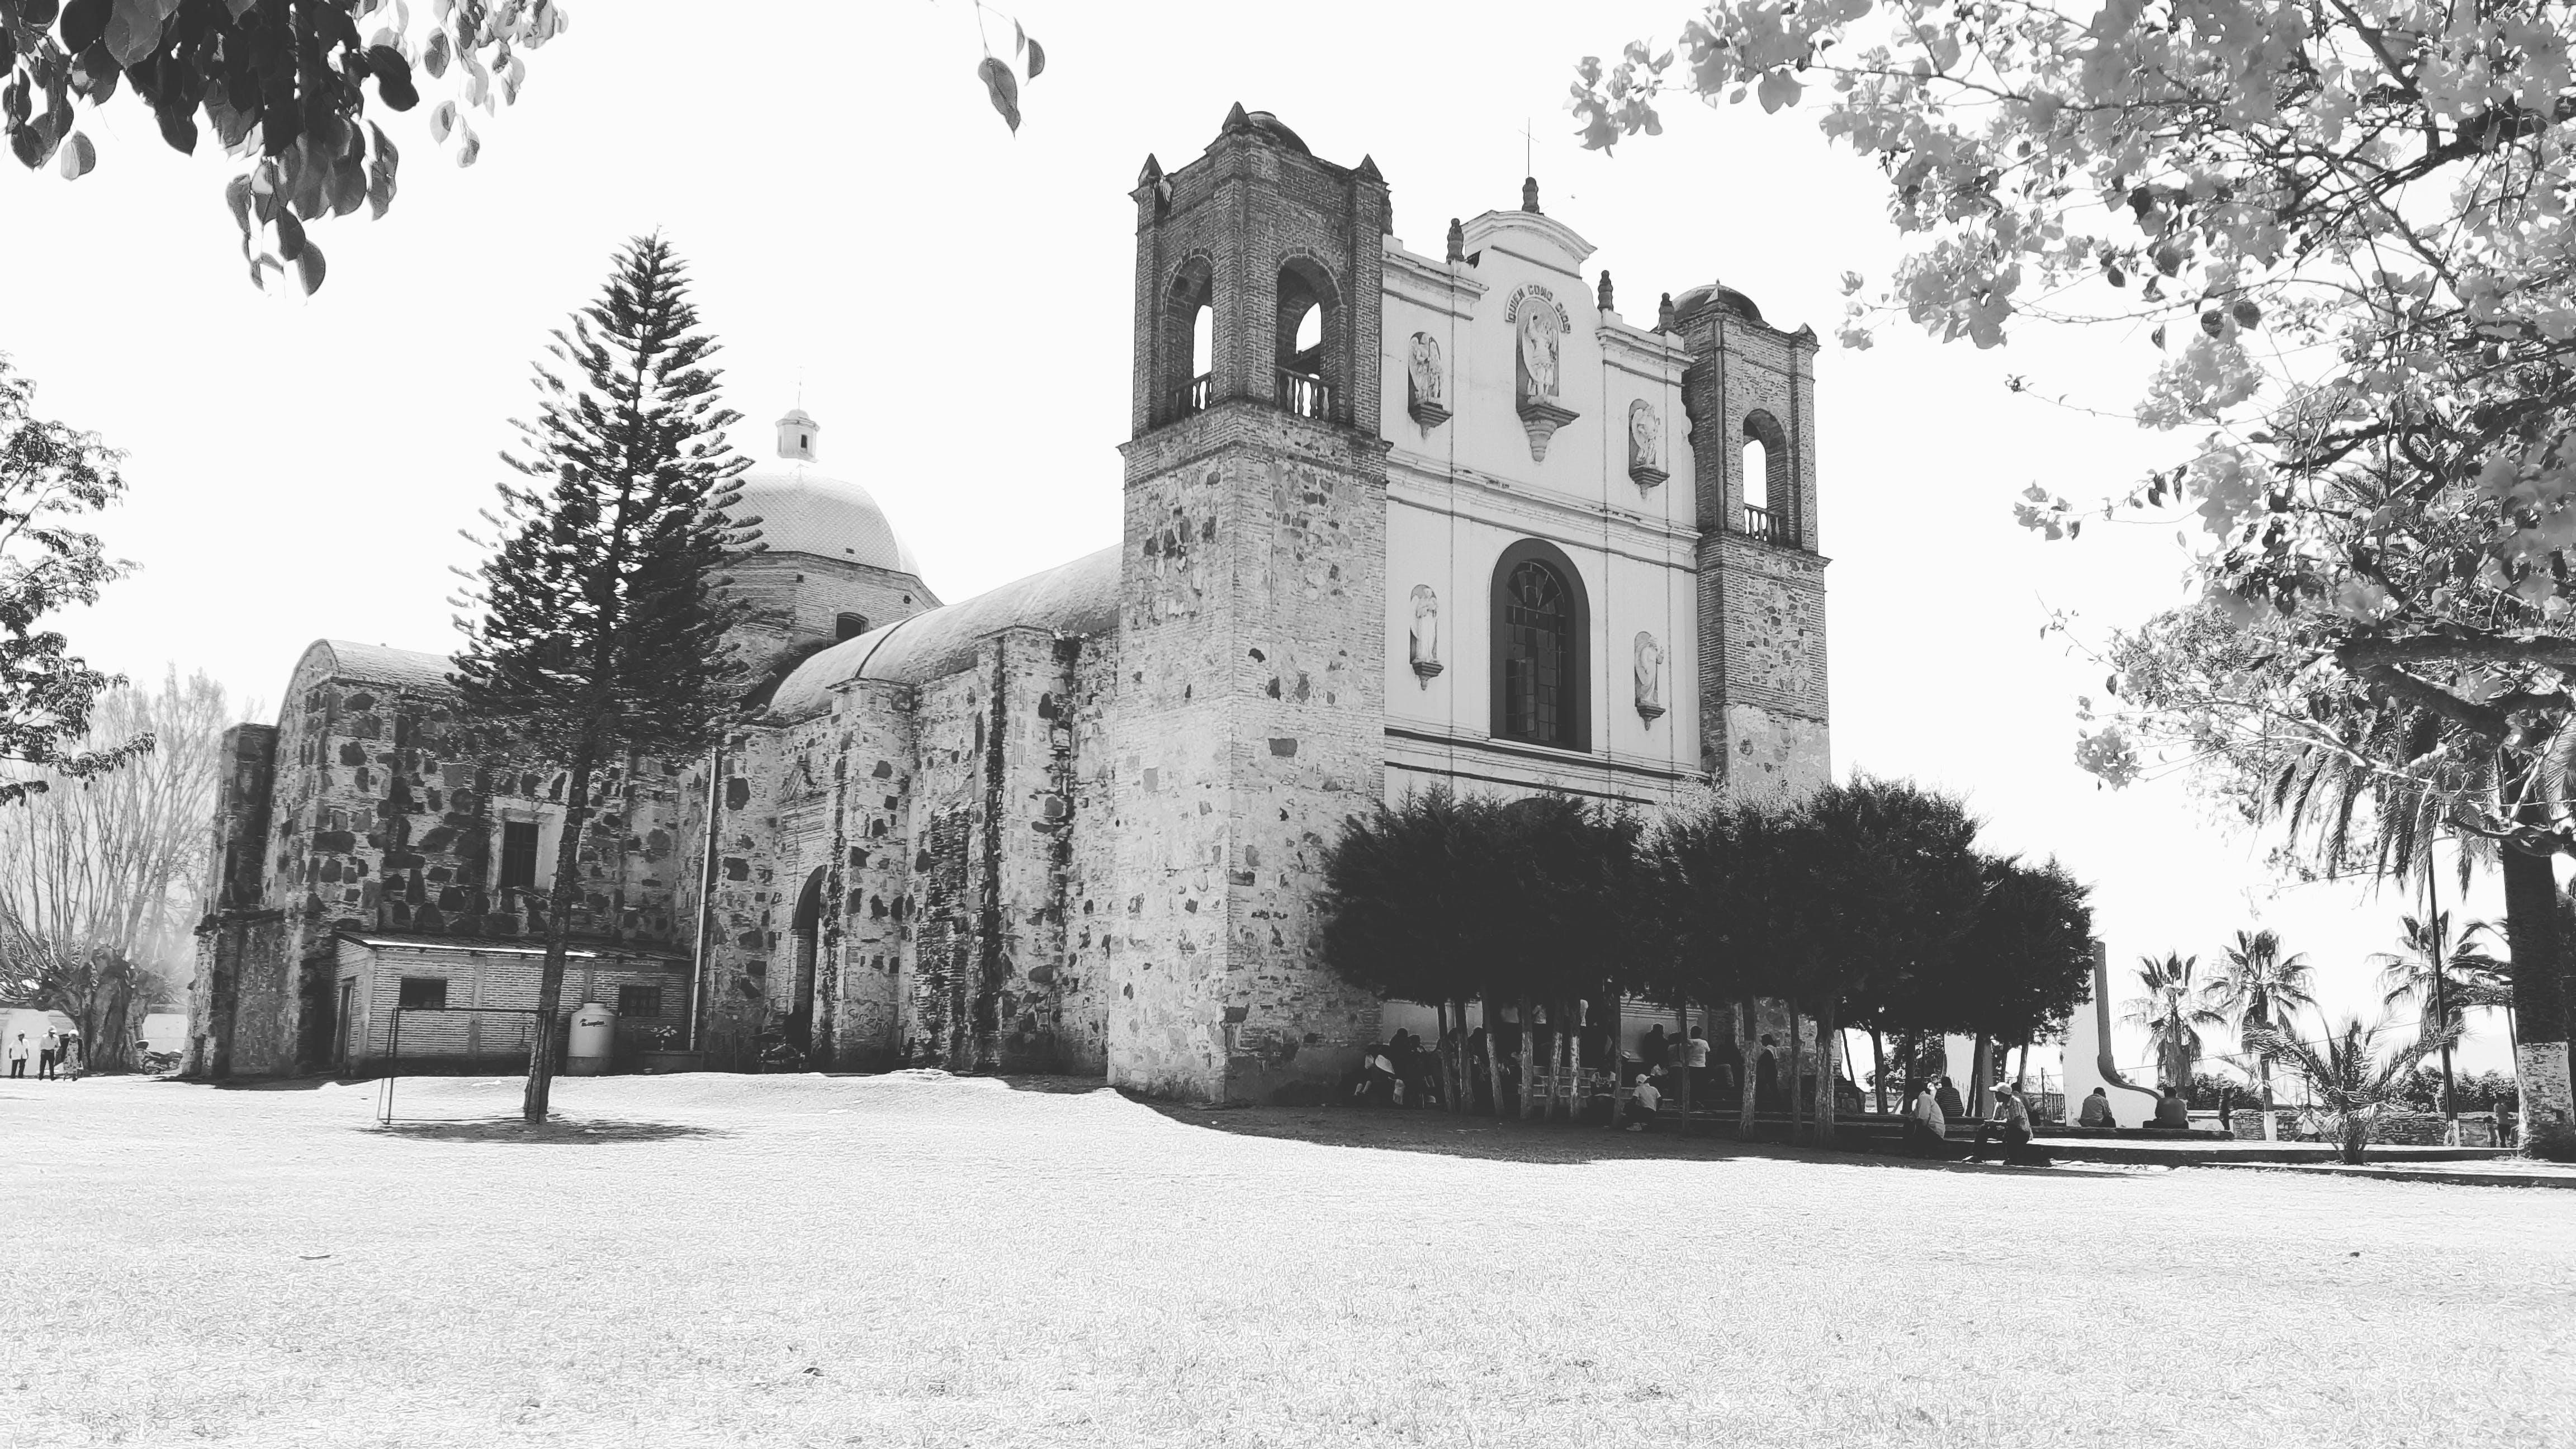 Grayscale Photo Of Church